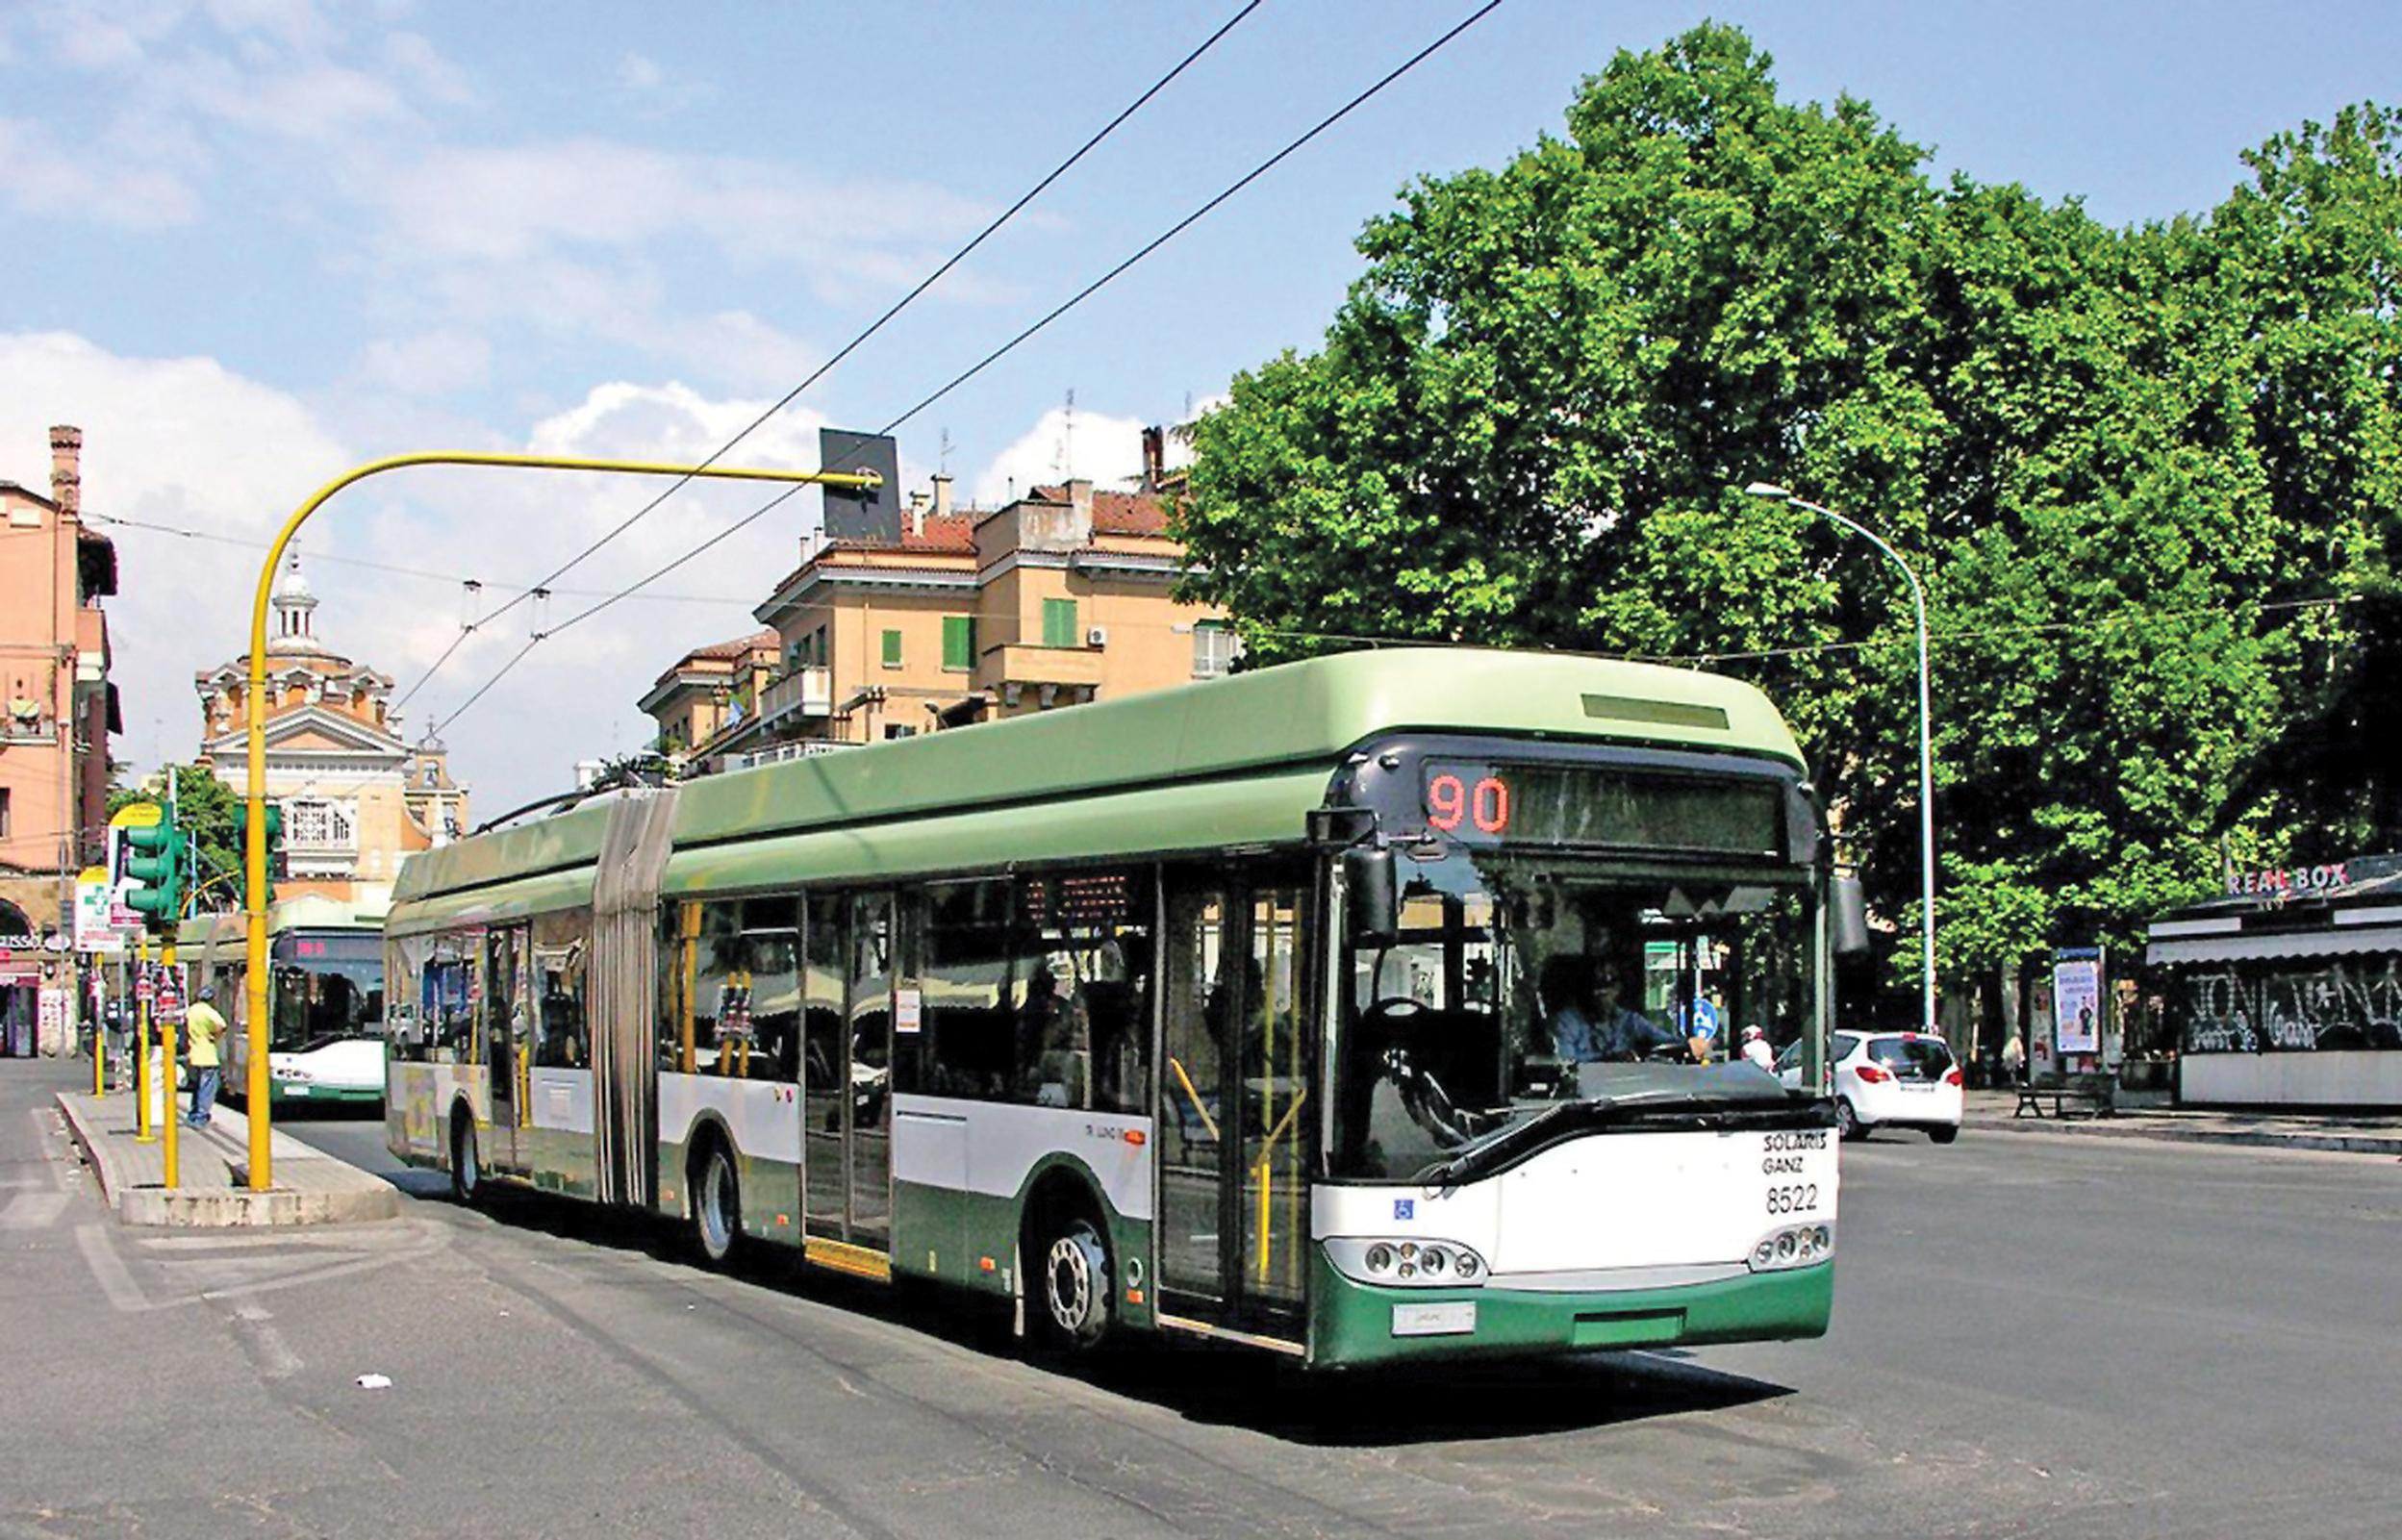 A trolleybus in Rome: could they electrify UK bus networks too, asks Ray Bentley